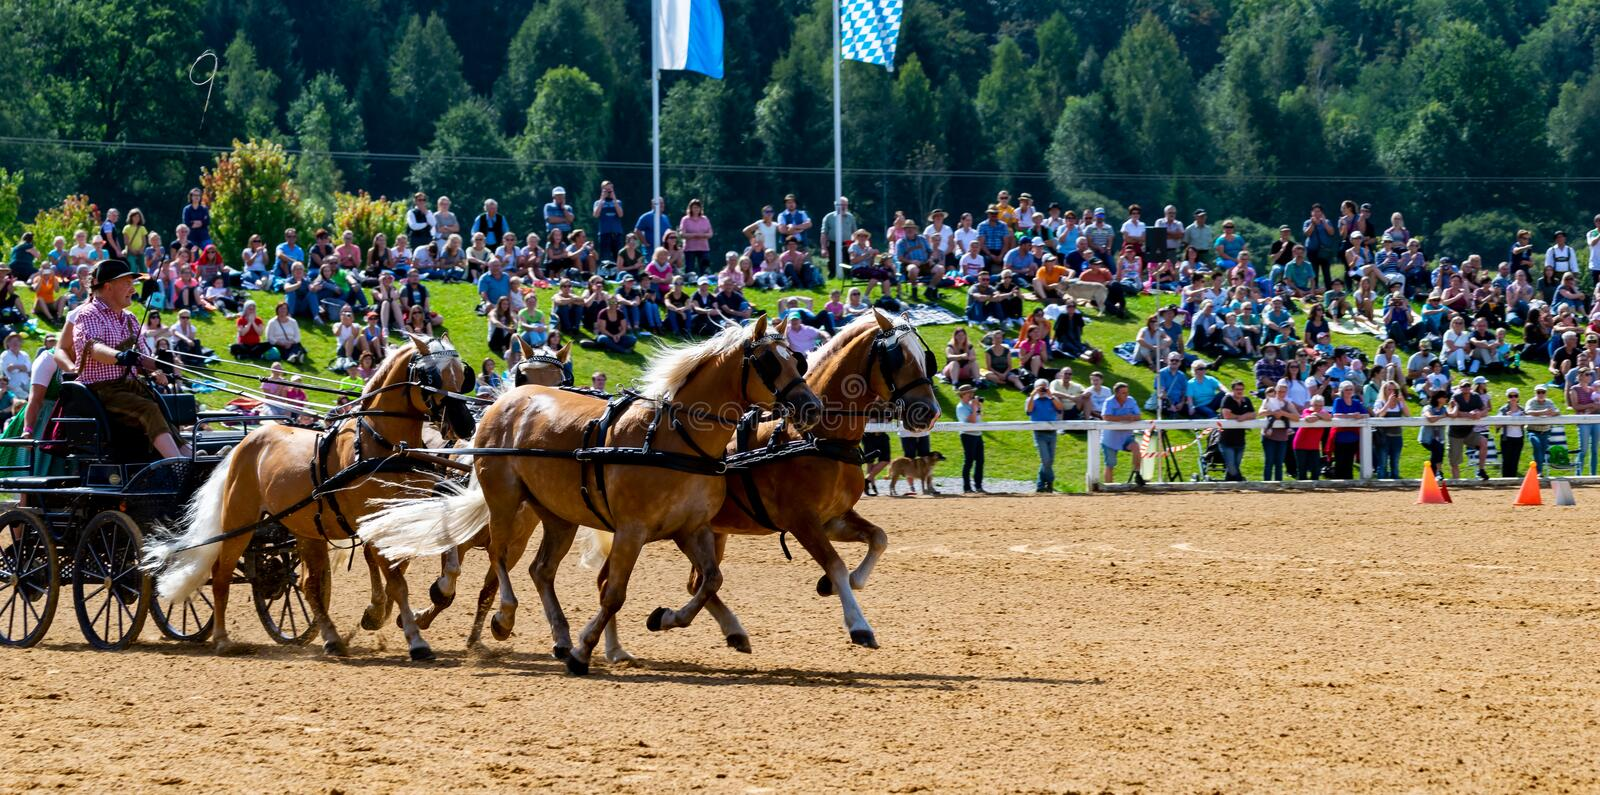 Horse-drawn carriage races at a stud show in Schwaiganger, Bavaria-September 9, 2018 royalty free stock photo